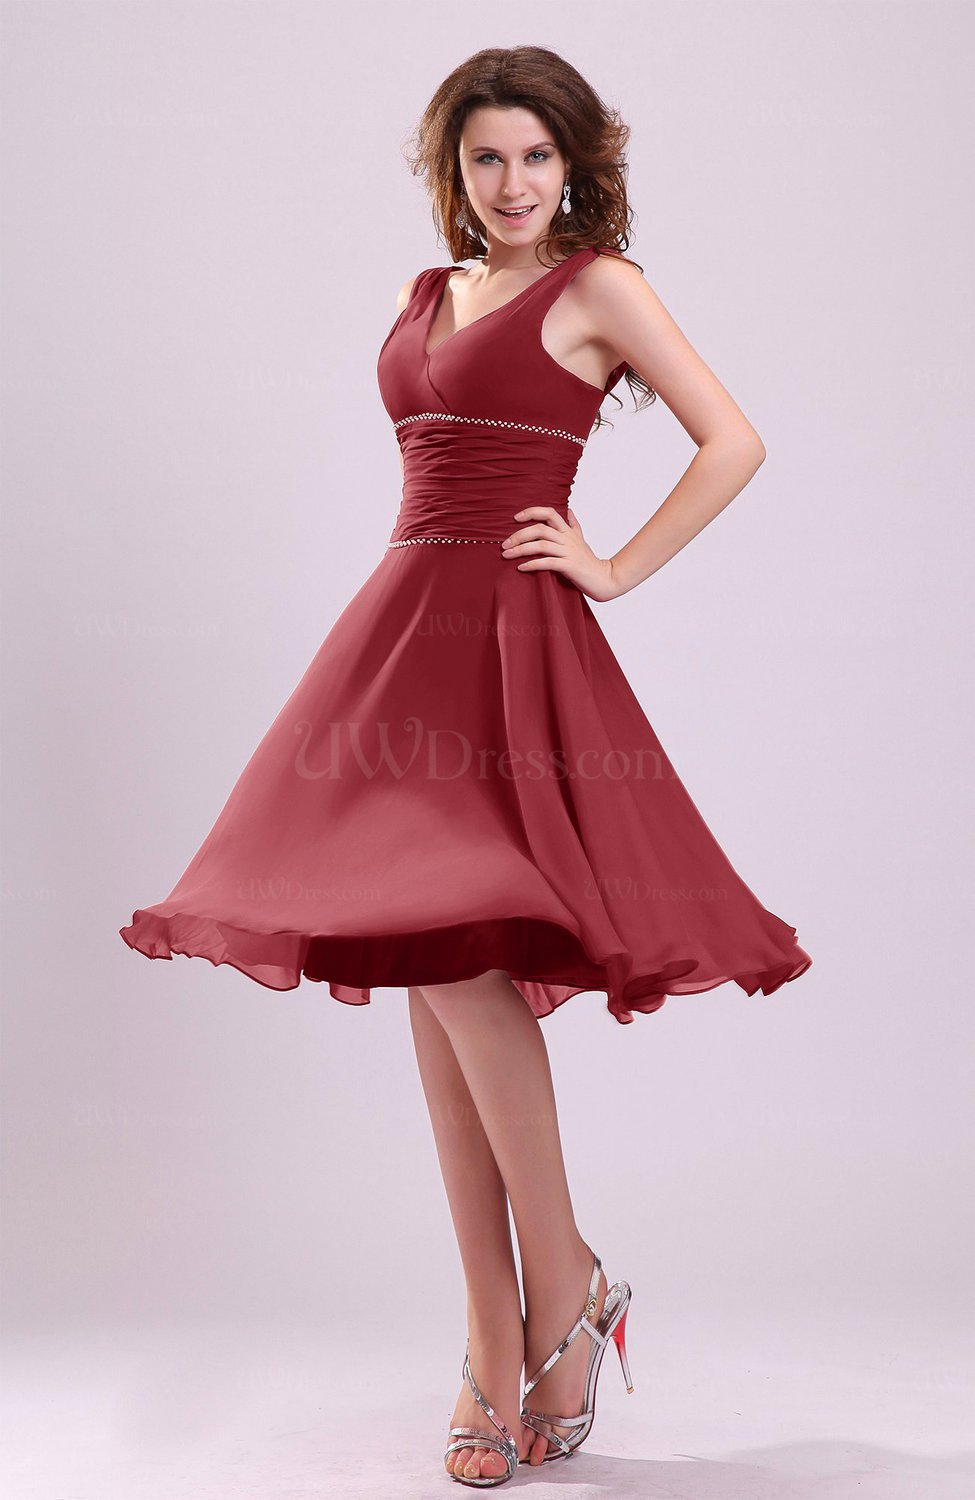 Plus size bridesmaid dresses uwdress dark red cute a line sleeveless chiffon knee length ruching bridesmaid dresses ombrellifo Image collections